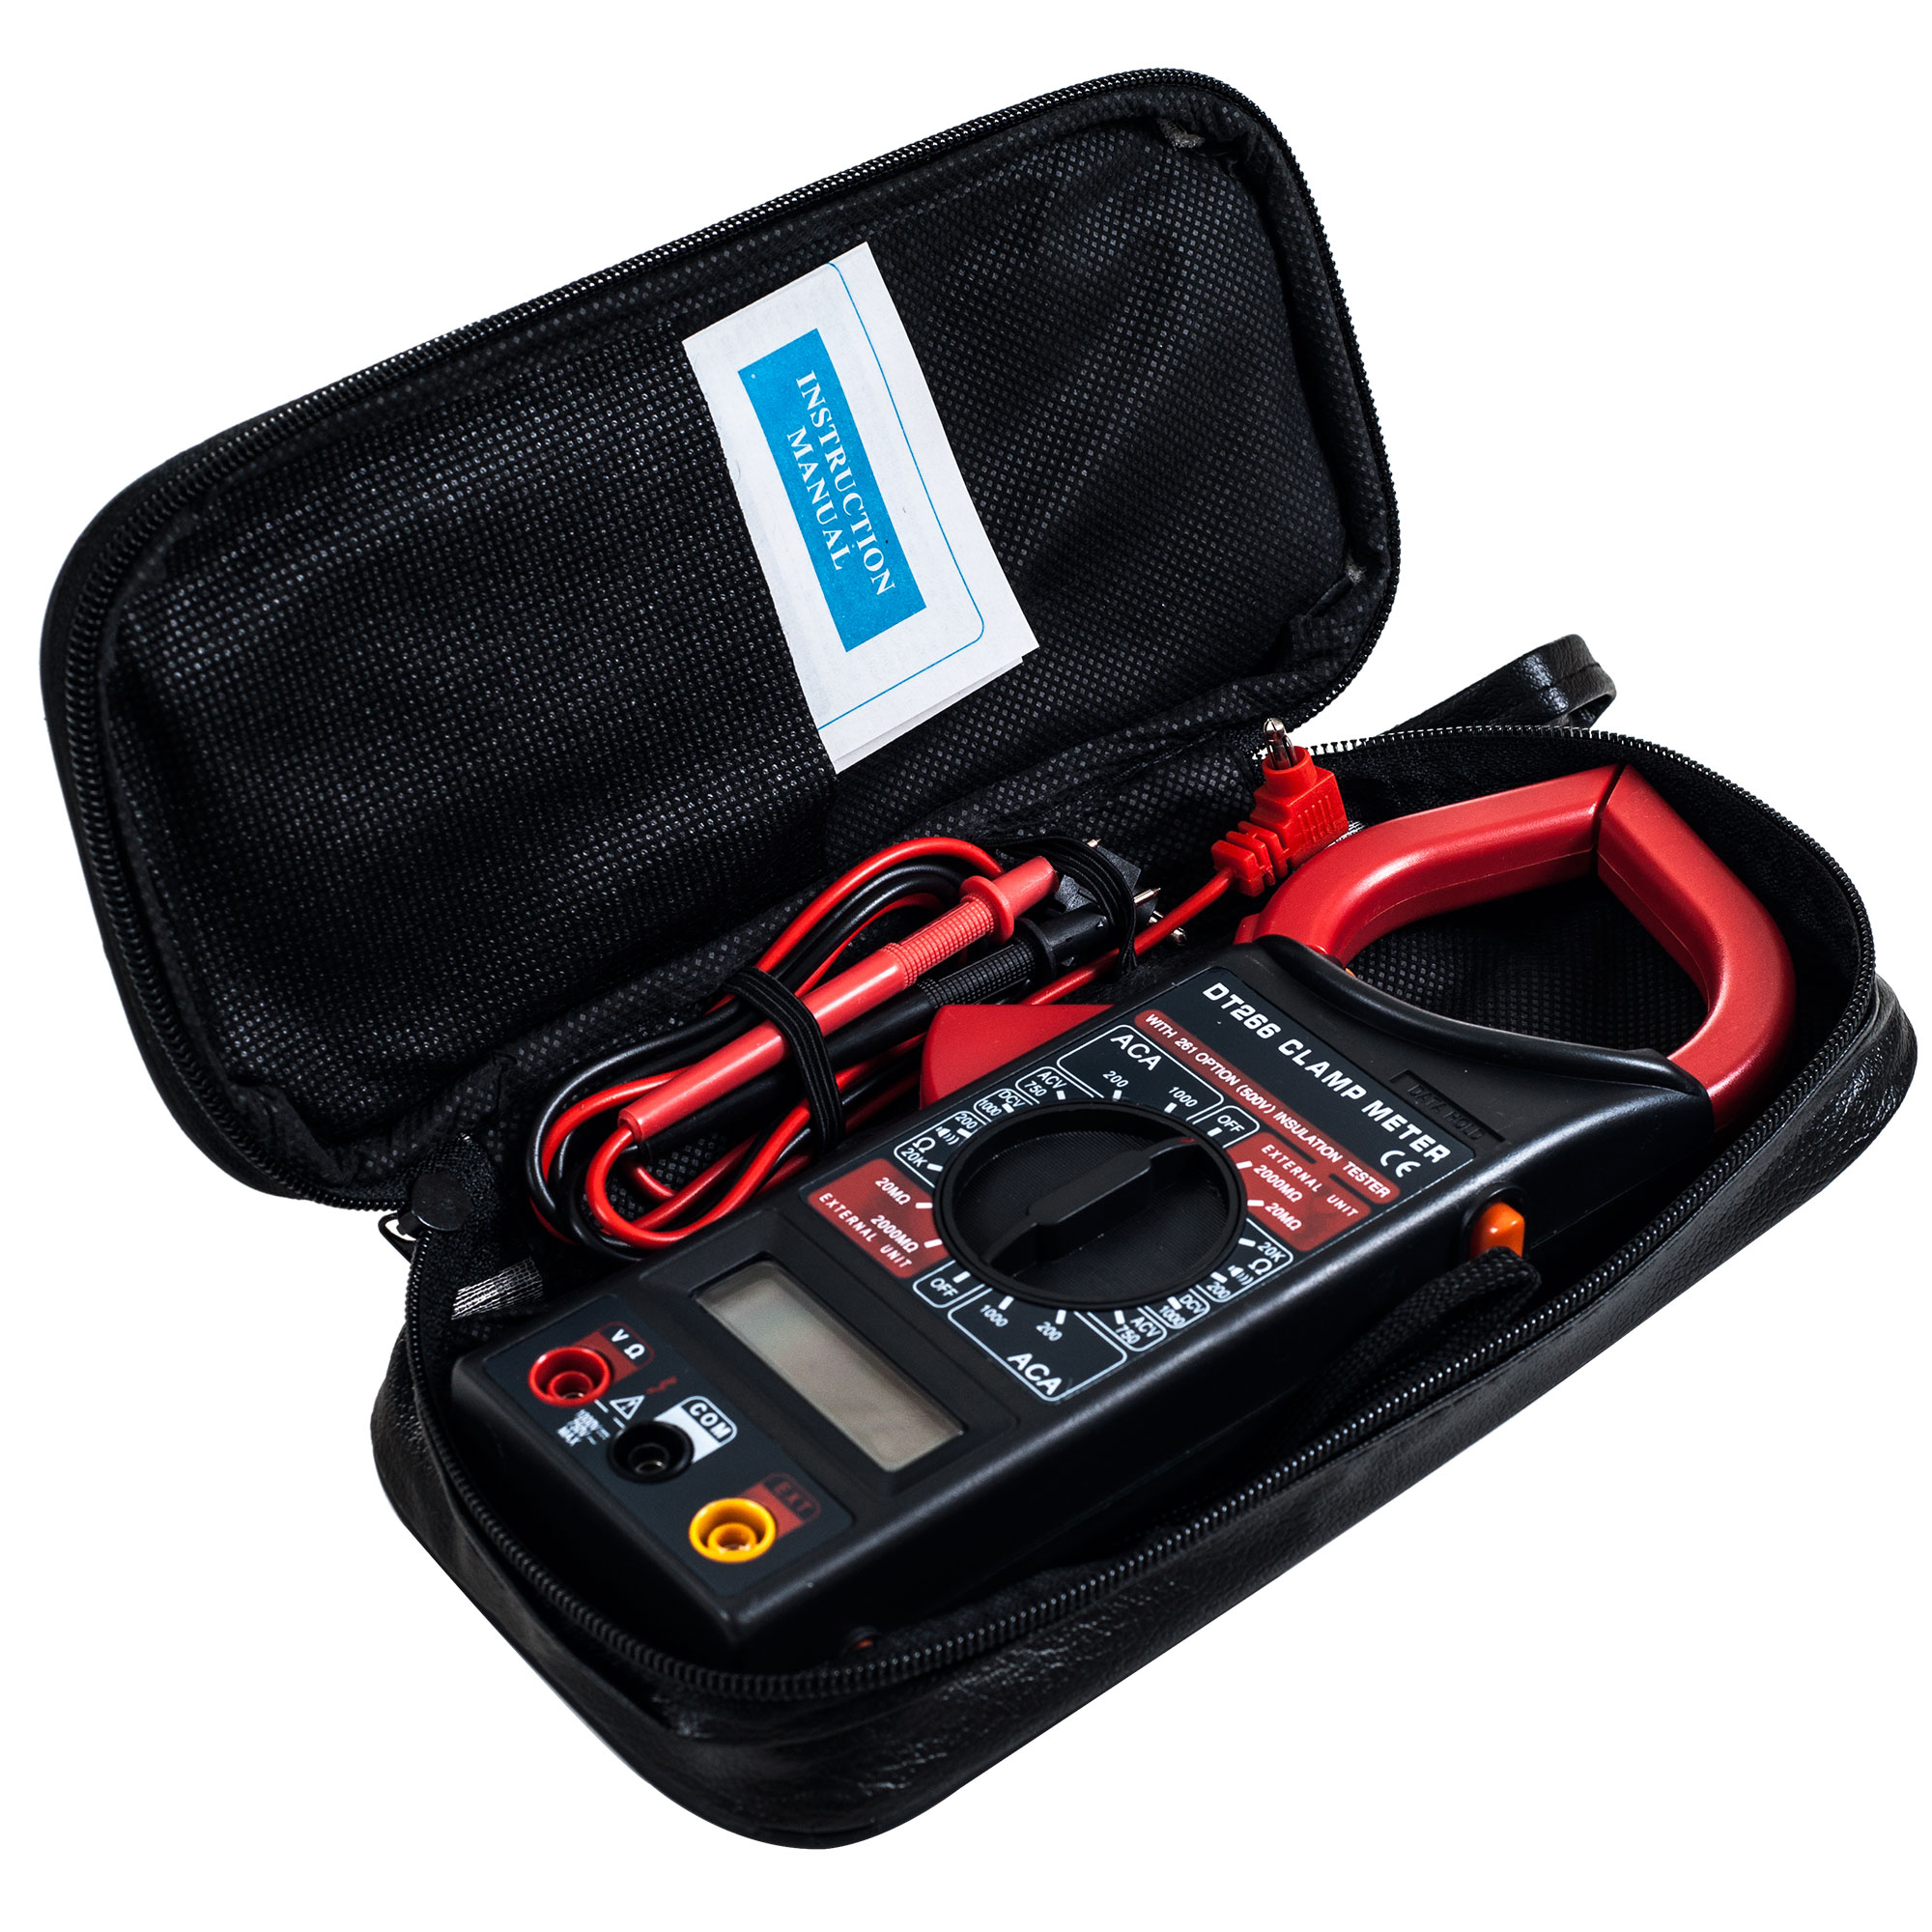 Wire Clamp Digital Multimeter with LCD Display and Needle Probes- Amp, Ohm and Voltage Tester for Outlets, Wire Continuity and Batteries by Stalwart